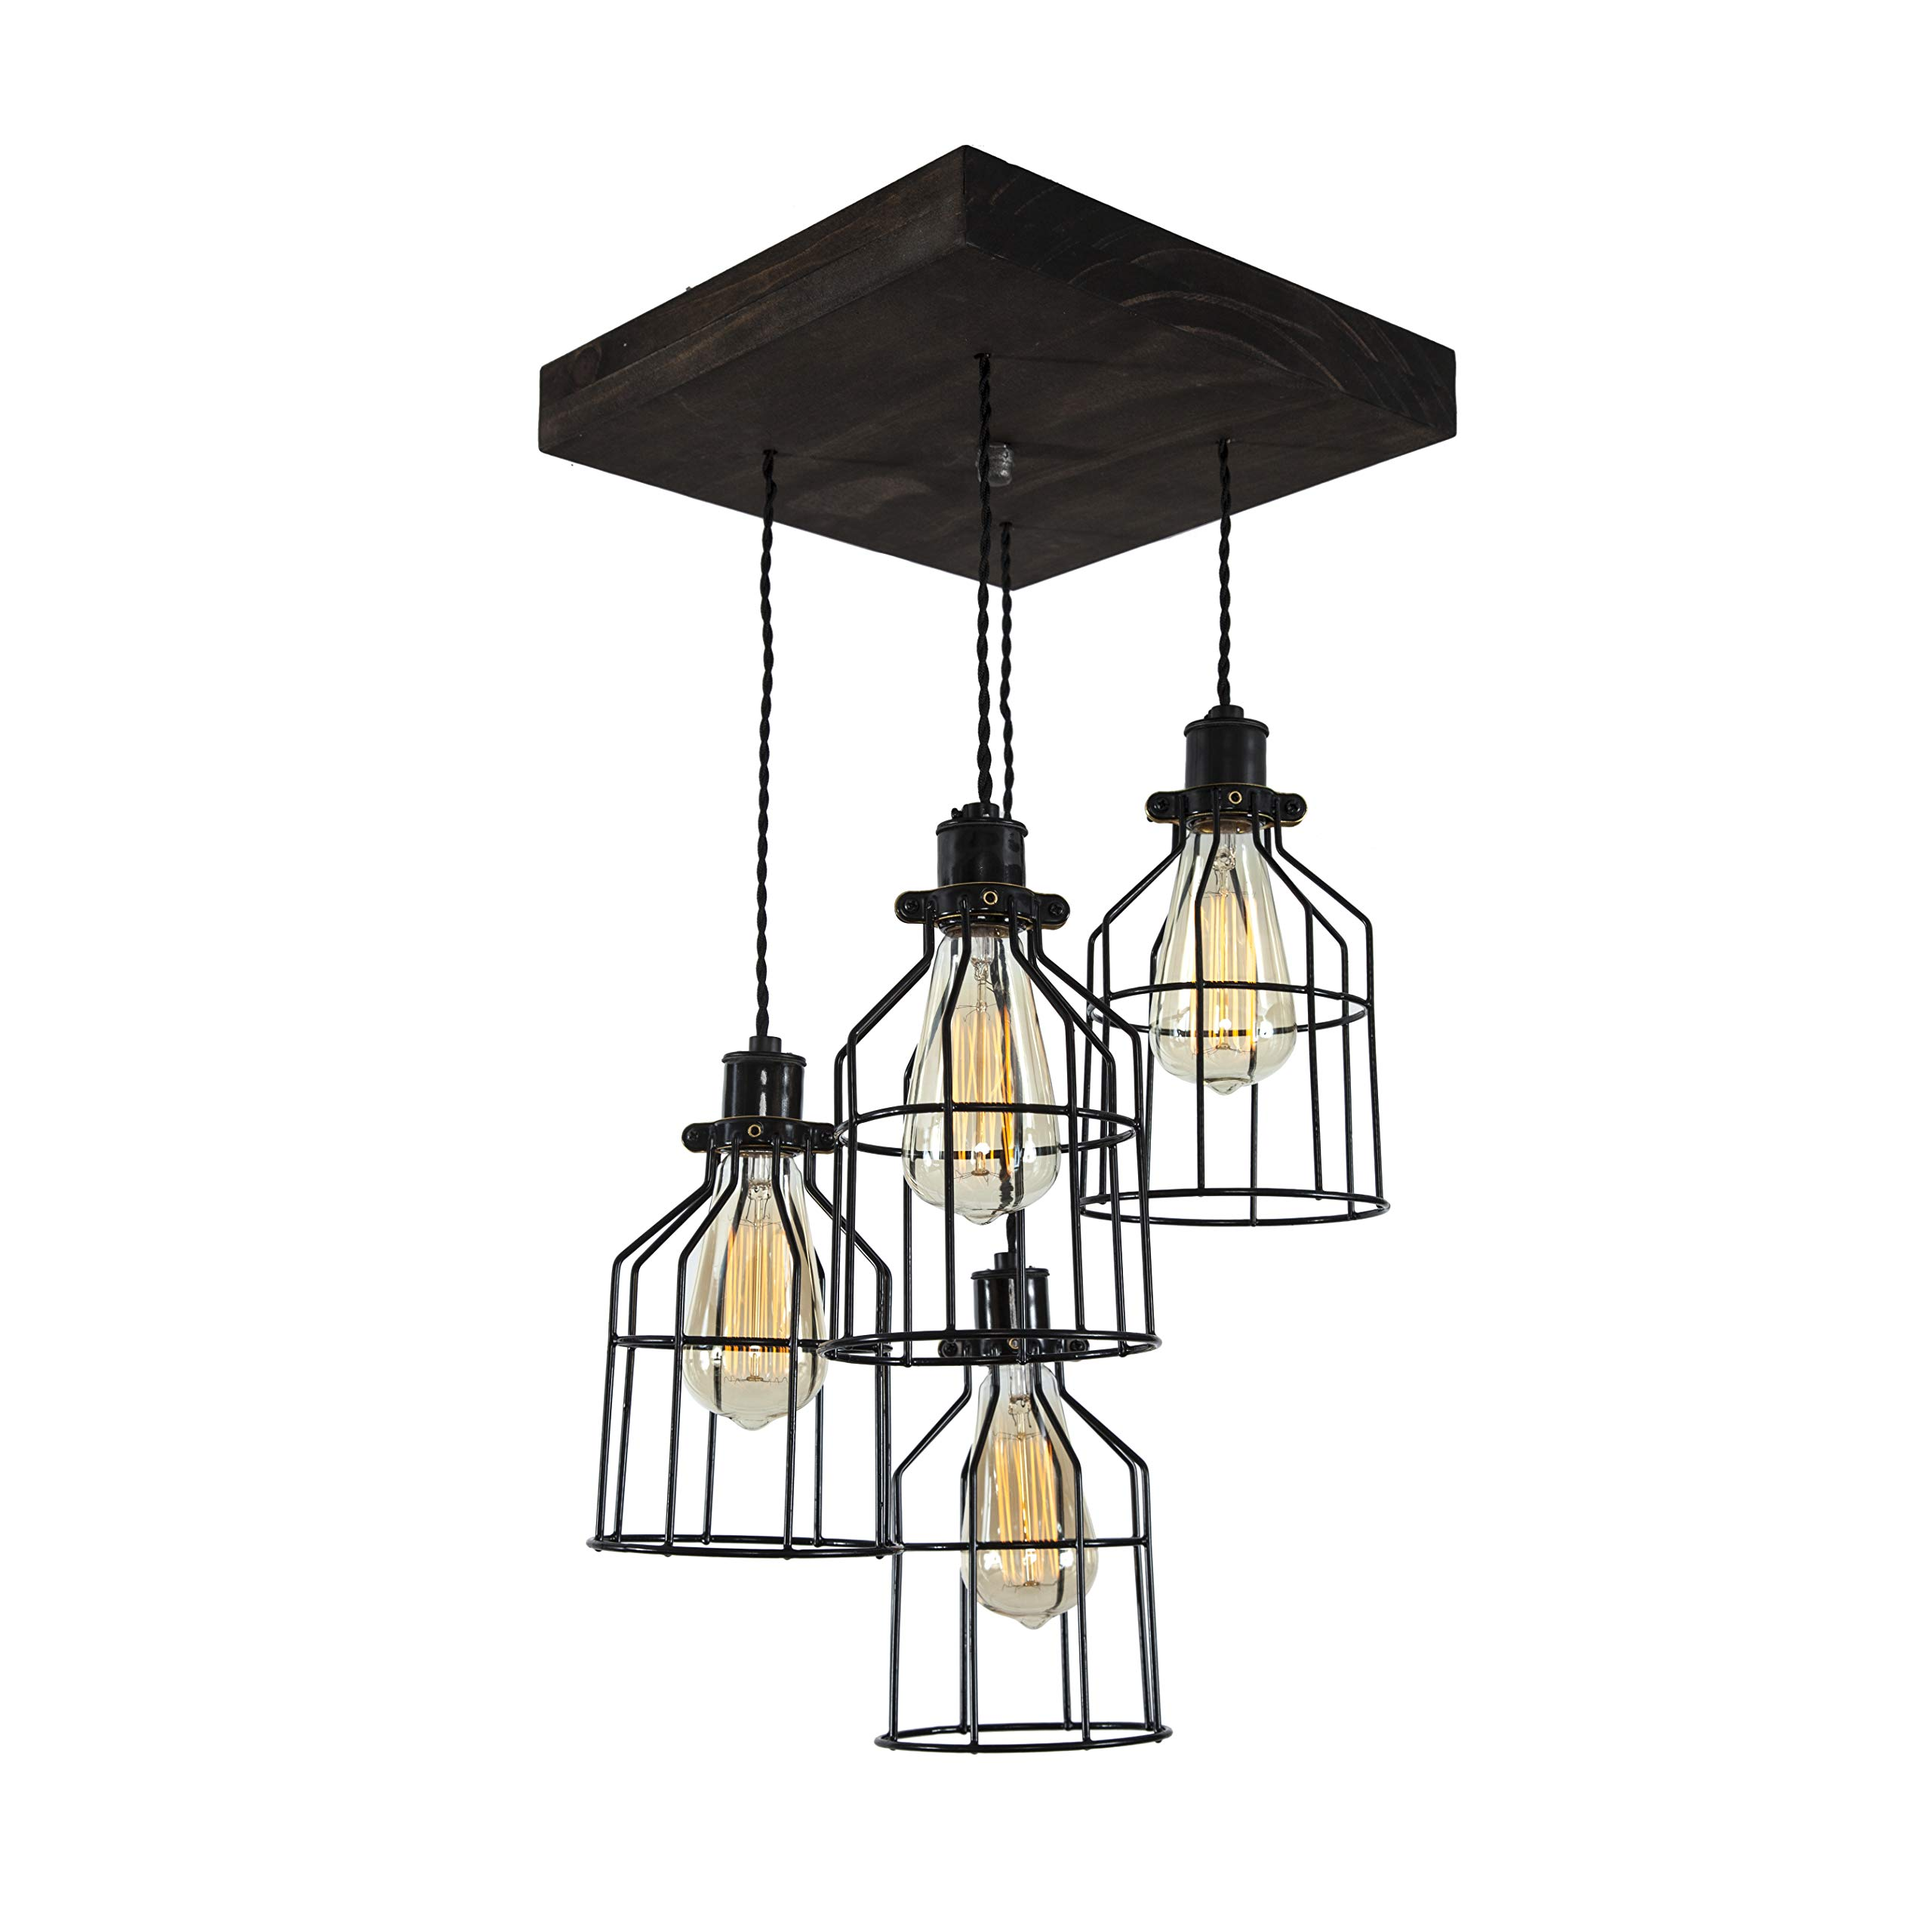 West Ninth Vintage Old Elm Wood Multi Pendant Farmhouse Chandelier | 4 Sockets with Black Cages